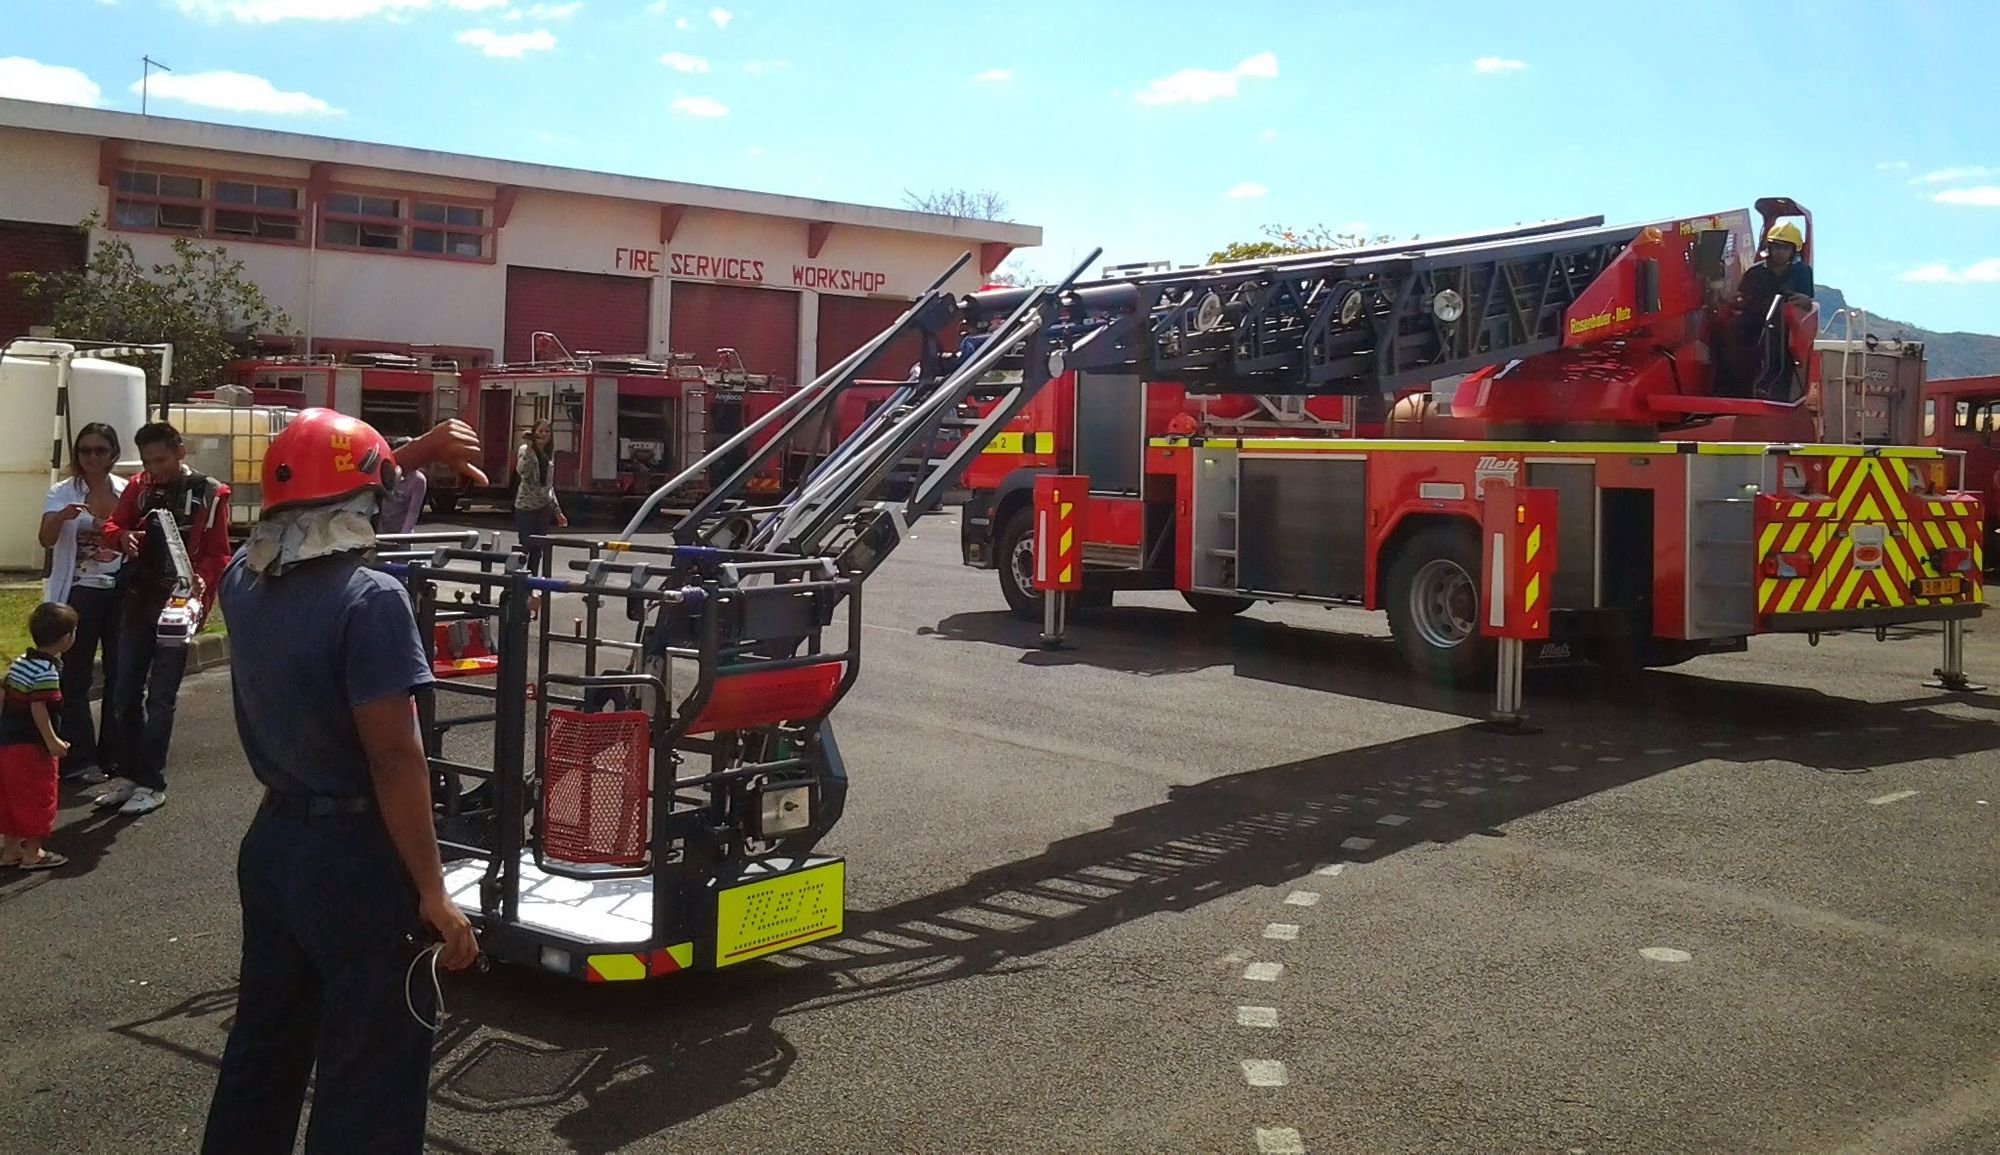 Visiting the Fire Station in Coromandel